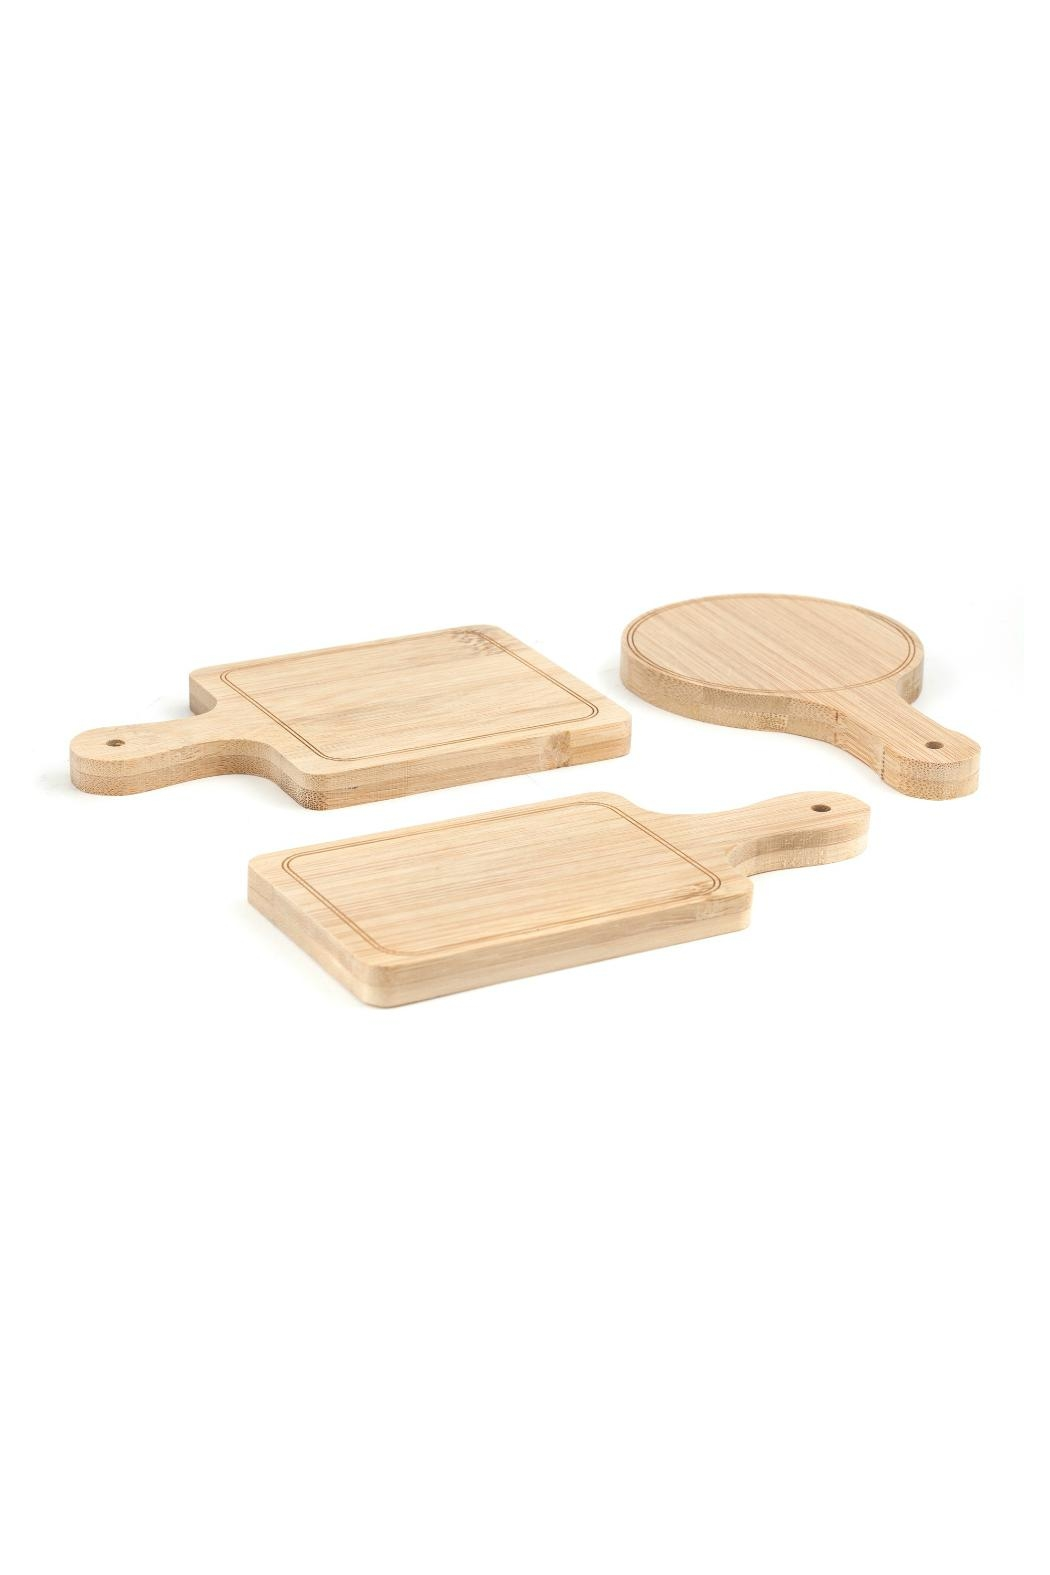 Kikkerland Design Mini Serving Trays - Main Image